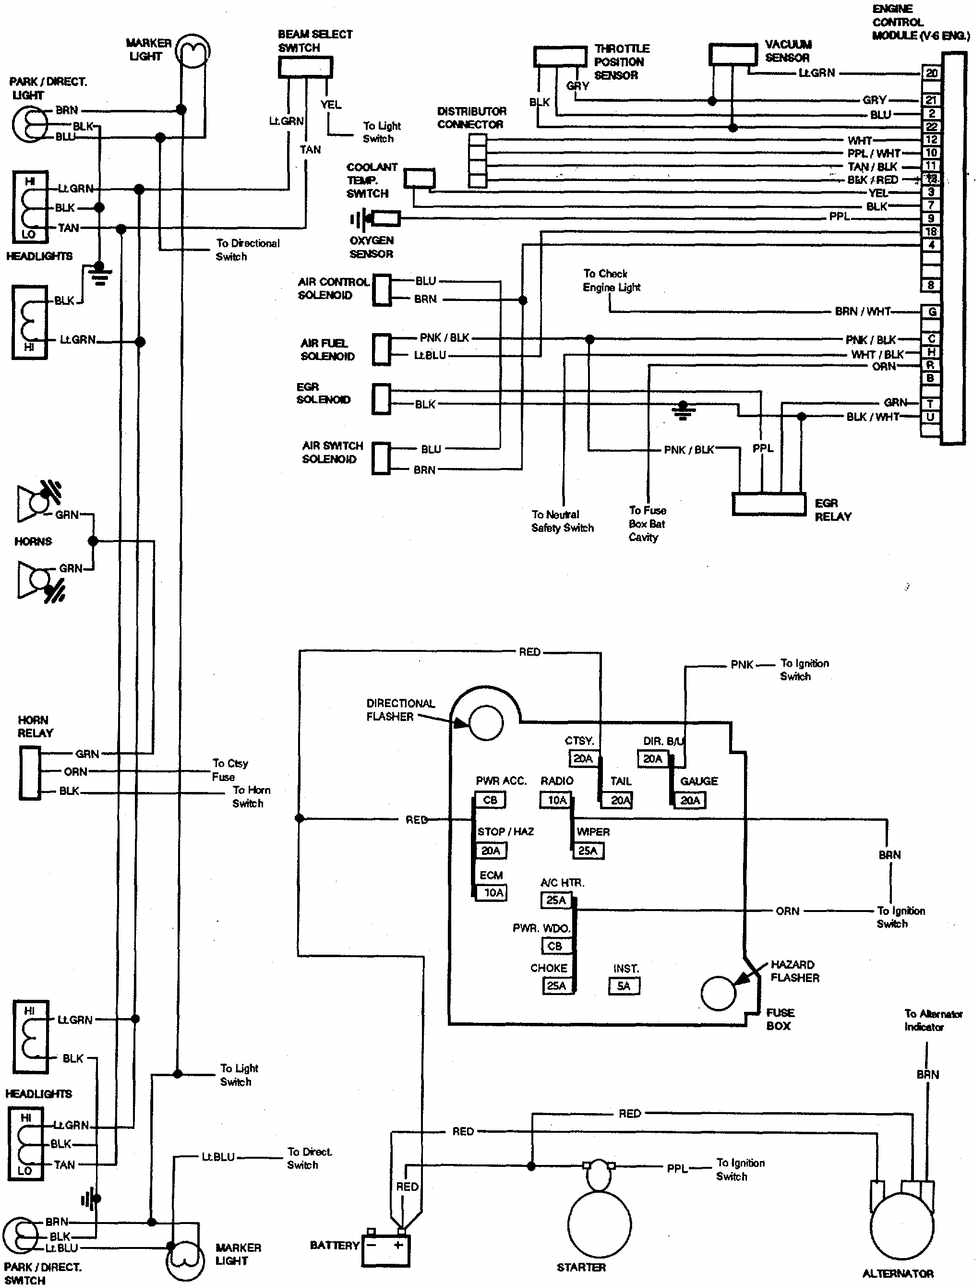 Hqdefault moreover Hqdefault besides C Eb moreover Maxresdefault additionally Chevrolet V Trucks Electrical Wiring Diagram. on 2000 monte carlo turn signal flasher location